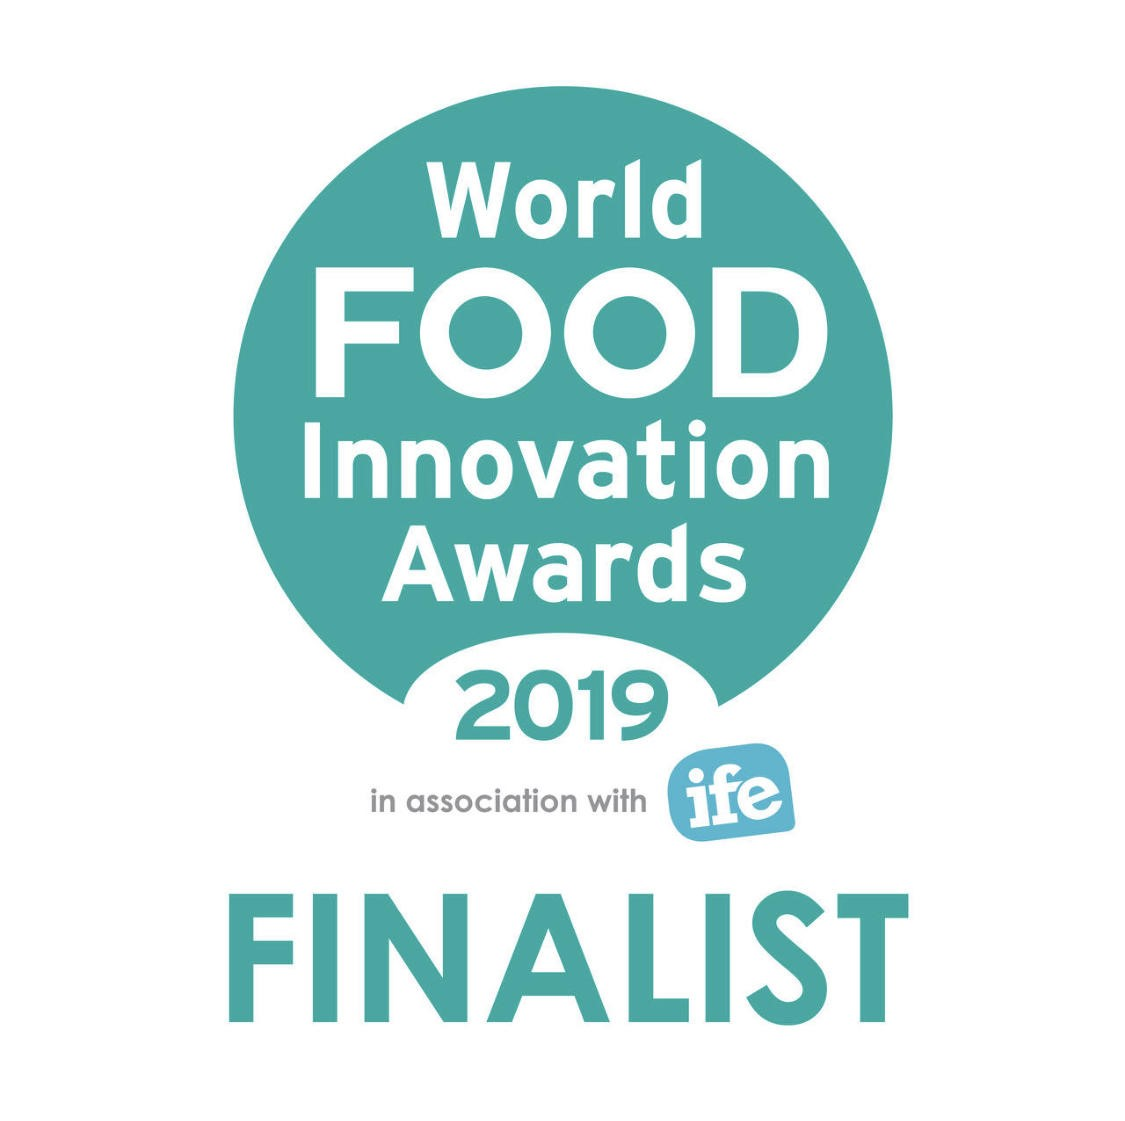 World Food Innovation Awards 2019